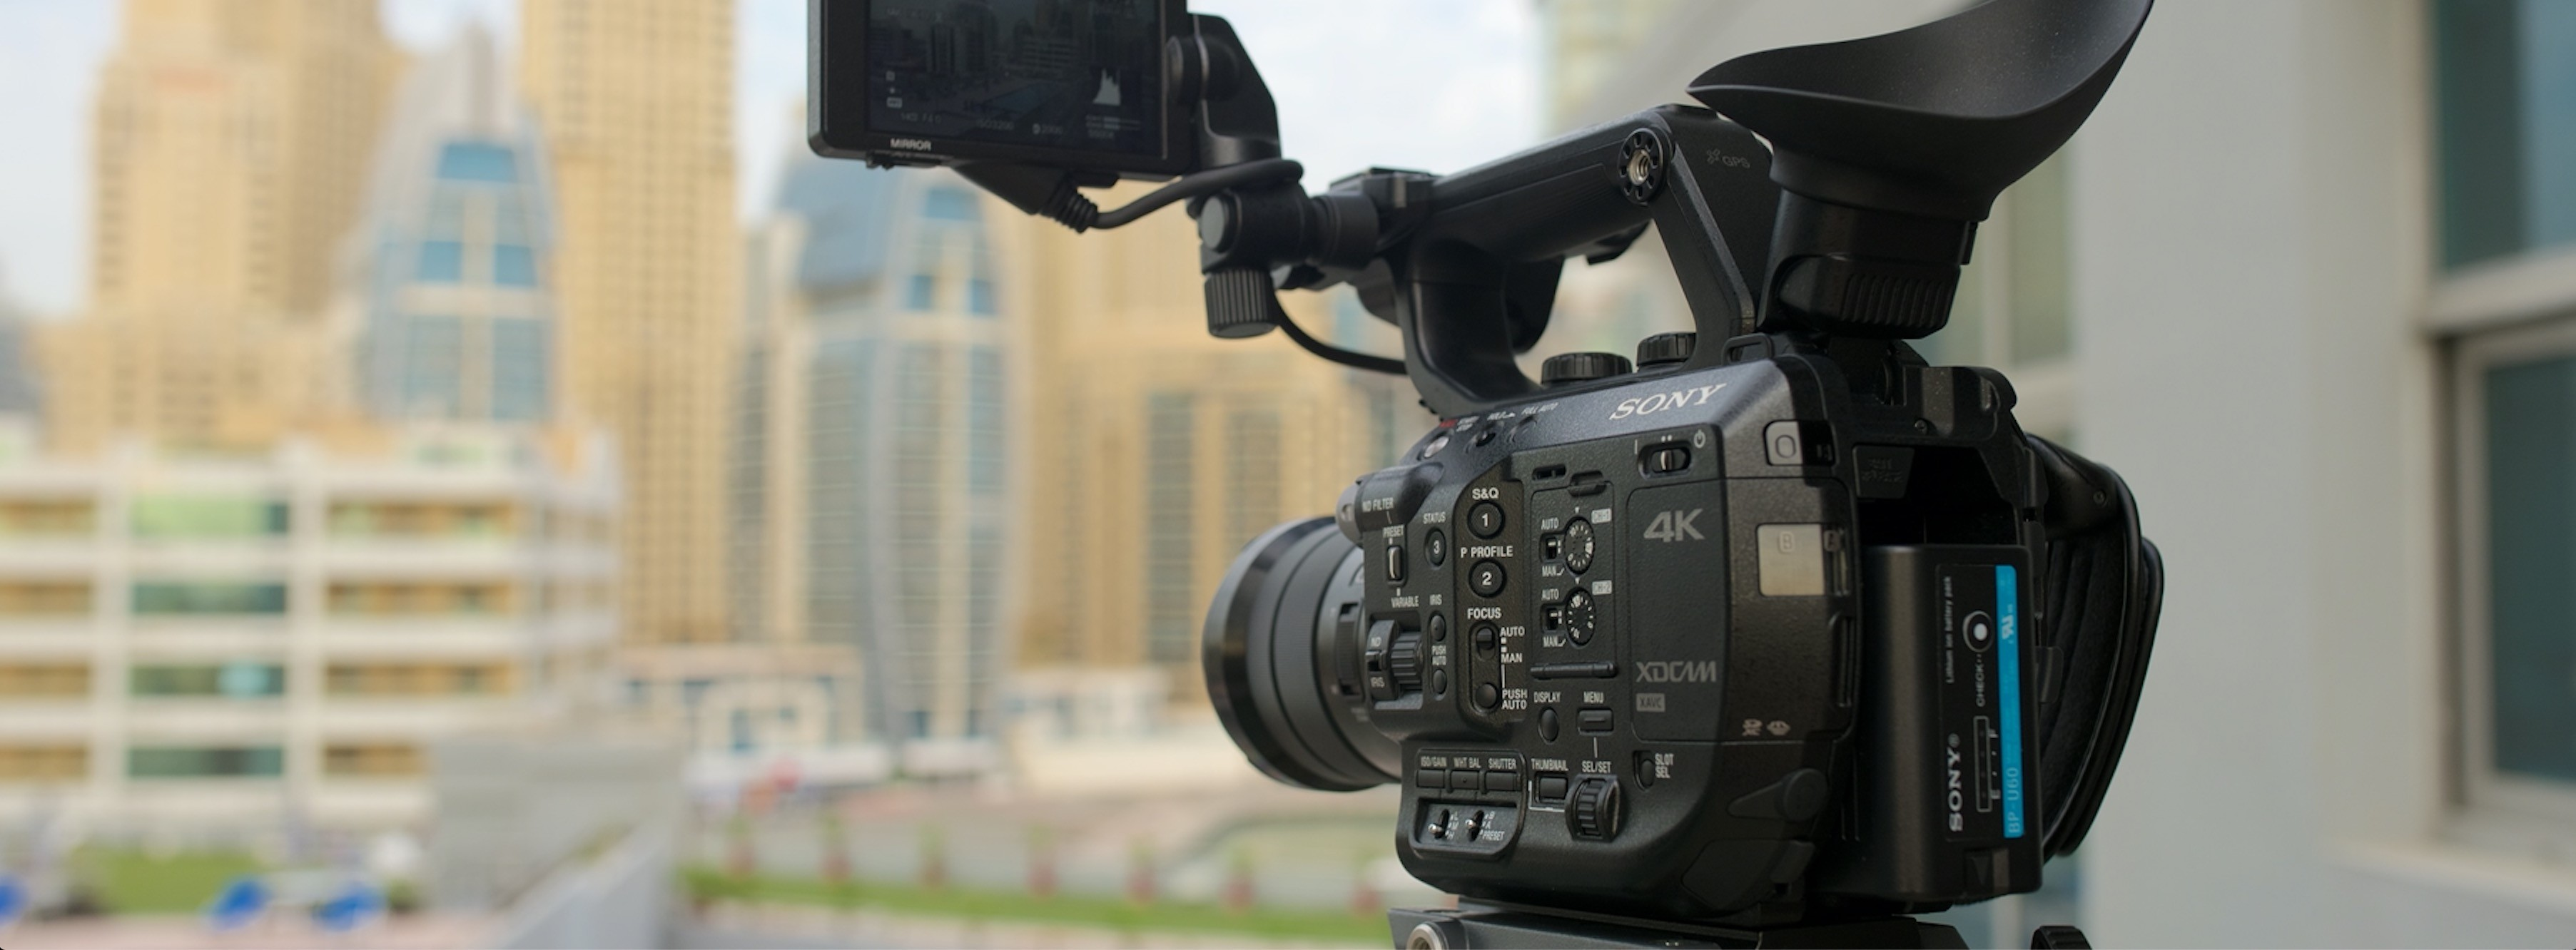 Sony FS5 Initial Thoughts<br> (pre-production model)